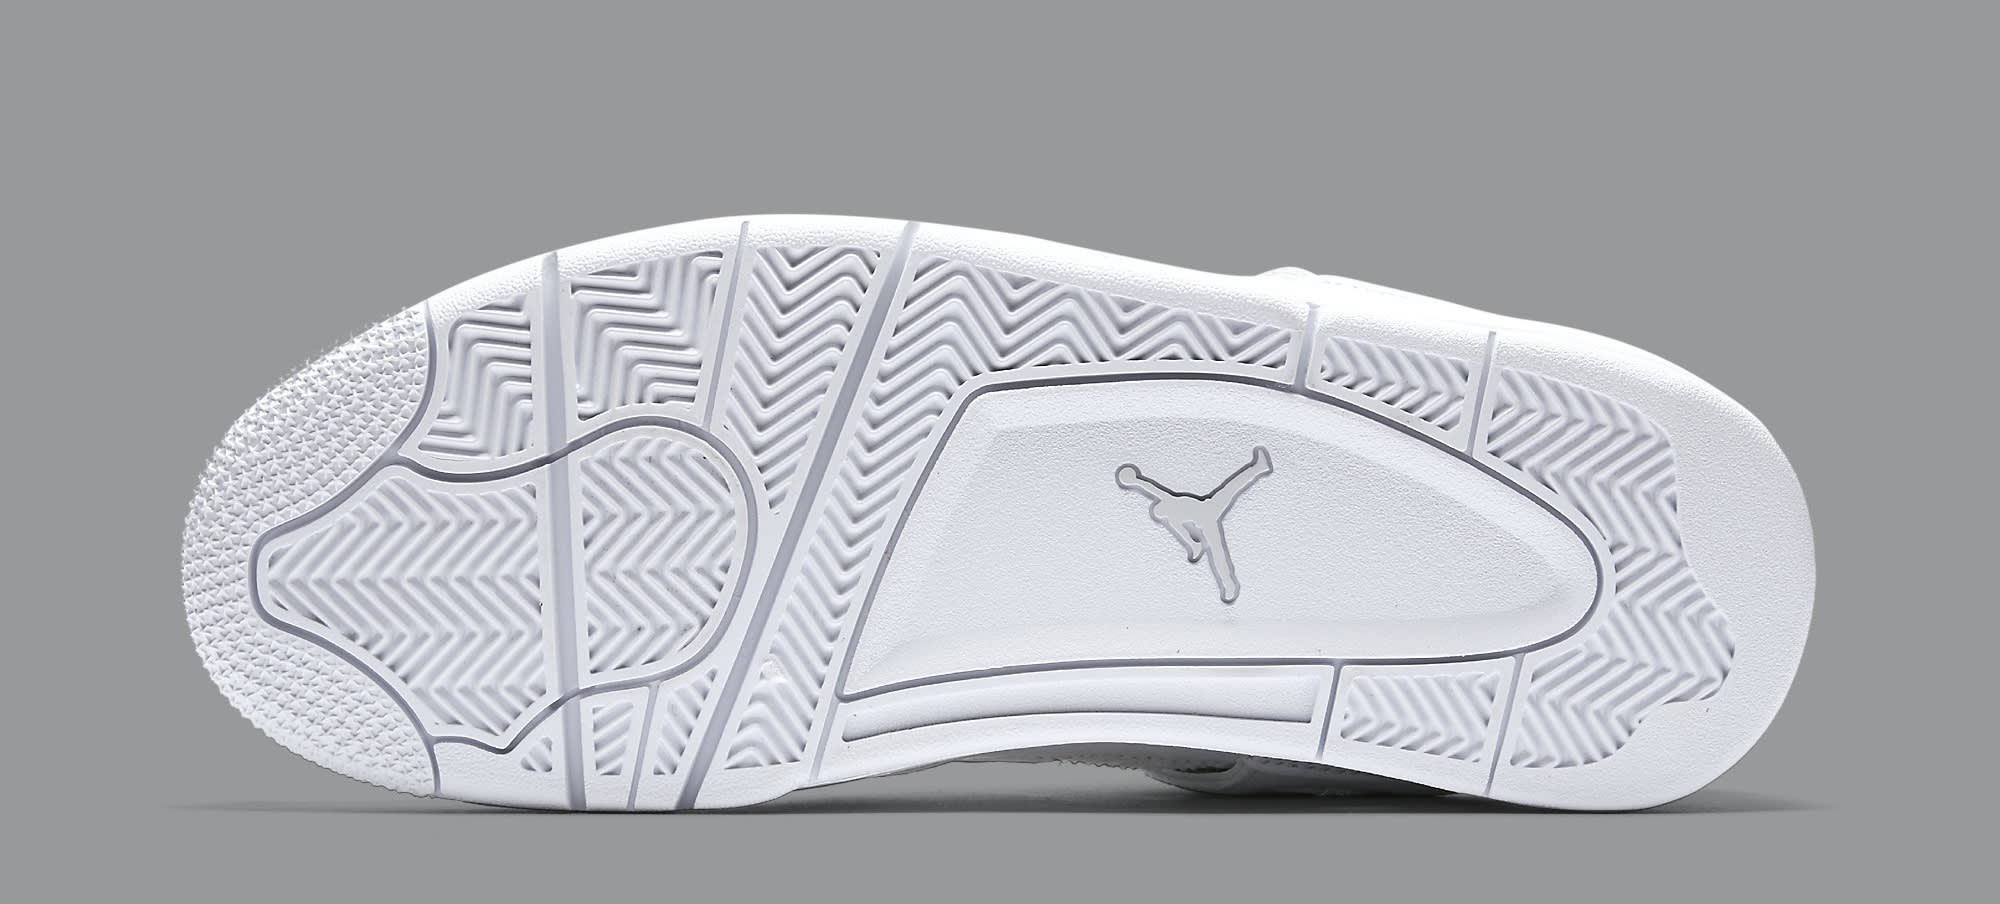 Pure Money Air Jordan 4 308497-100 Sole